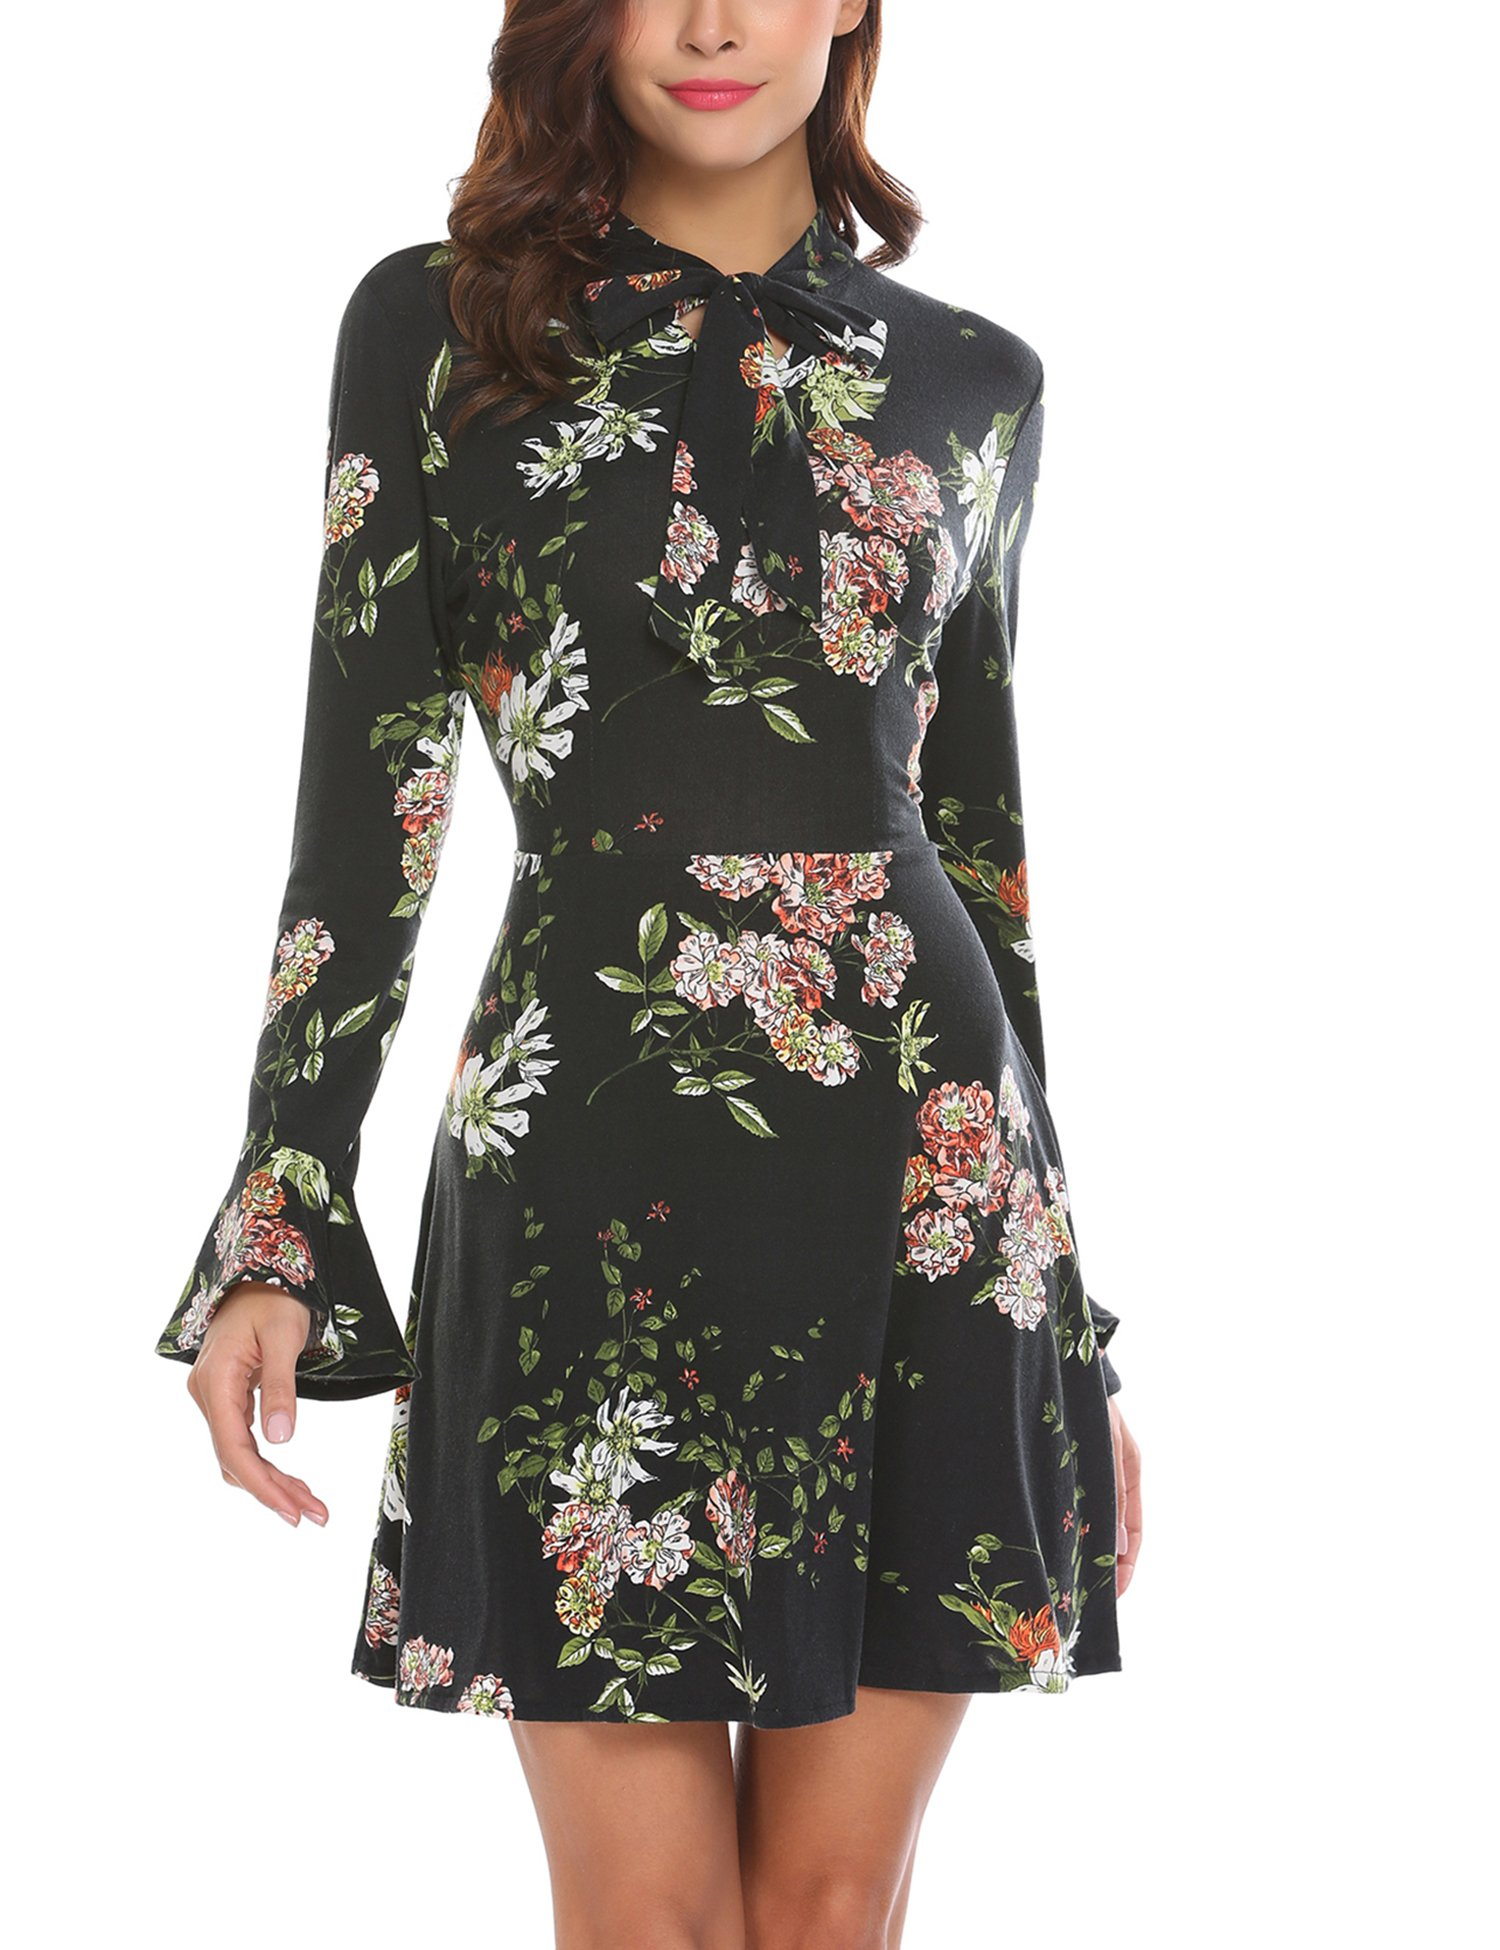 ACEVOG Women's Casual Floral Print Bell Sleeve Fit and Flare Dress (X-Large, Black) by ACEVOG (Image #1)